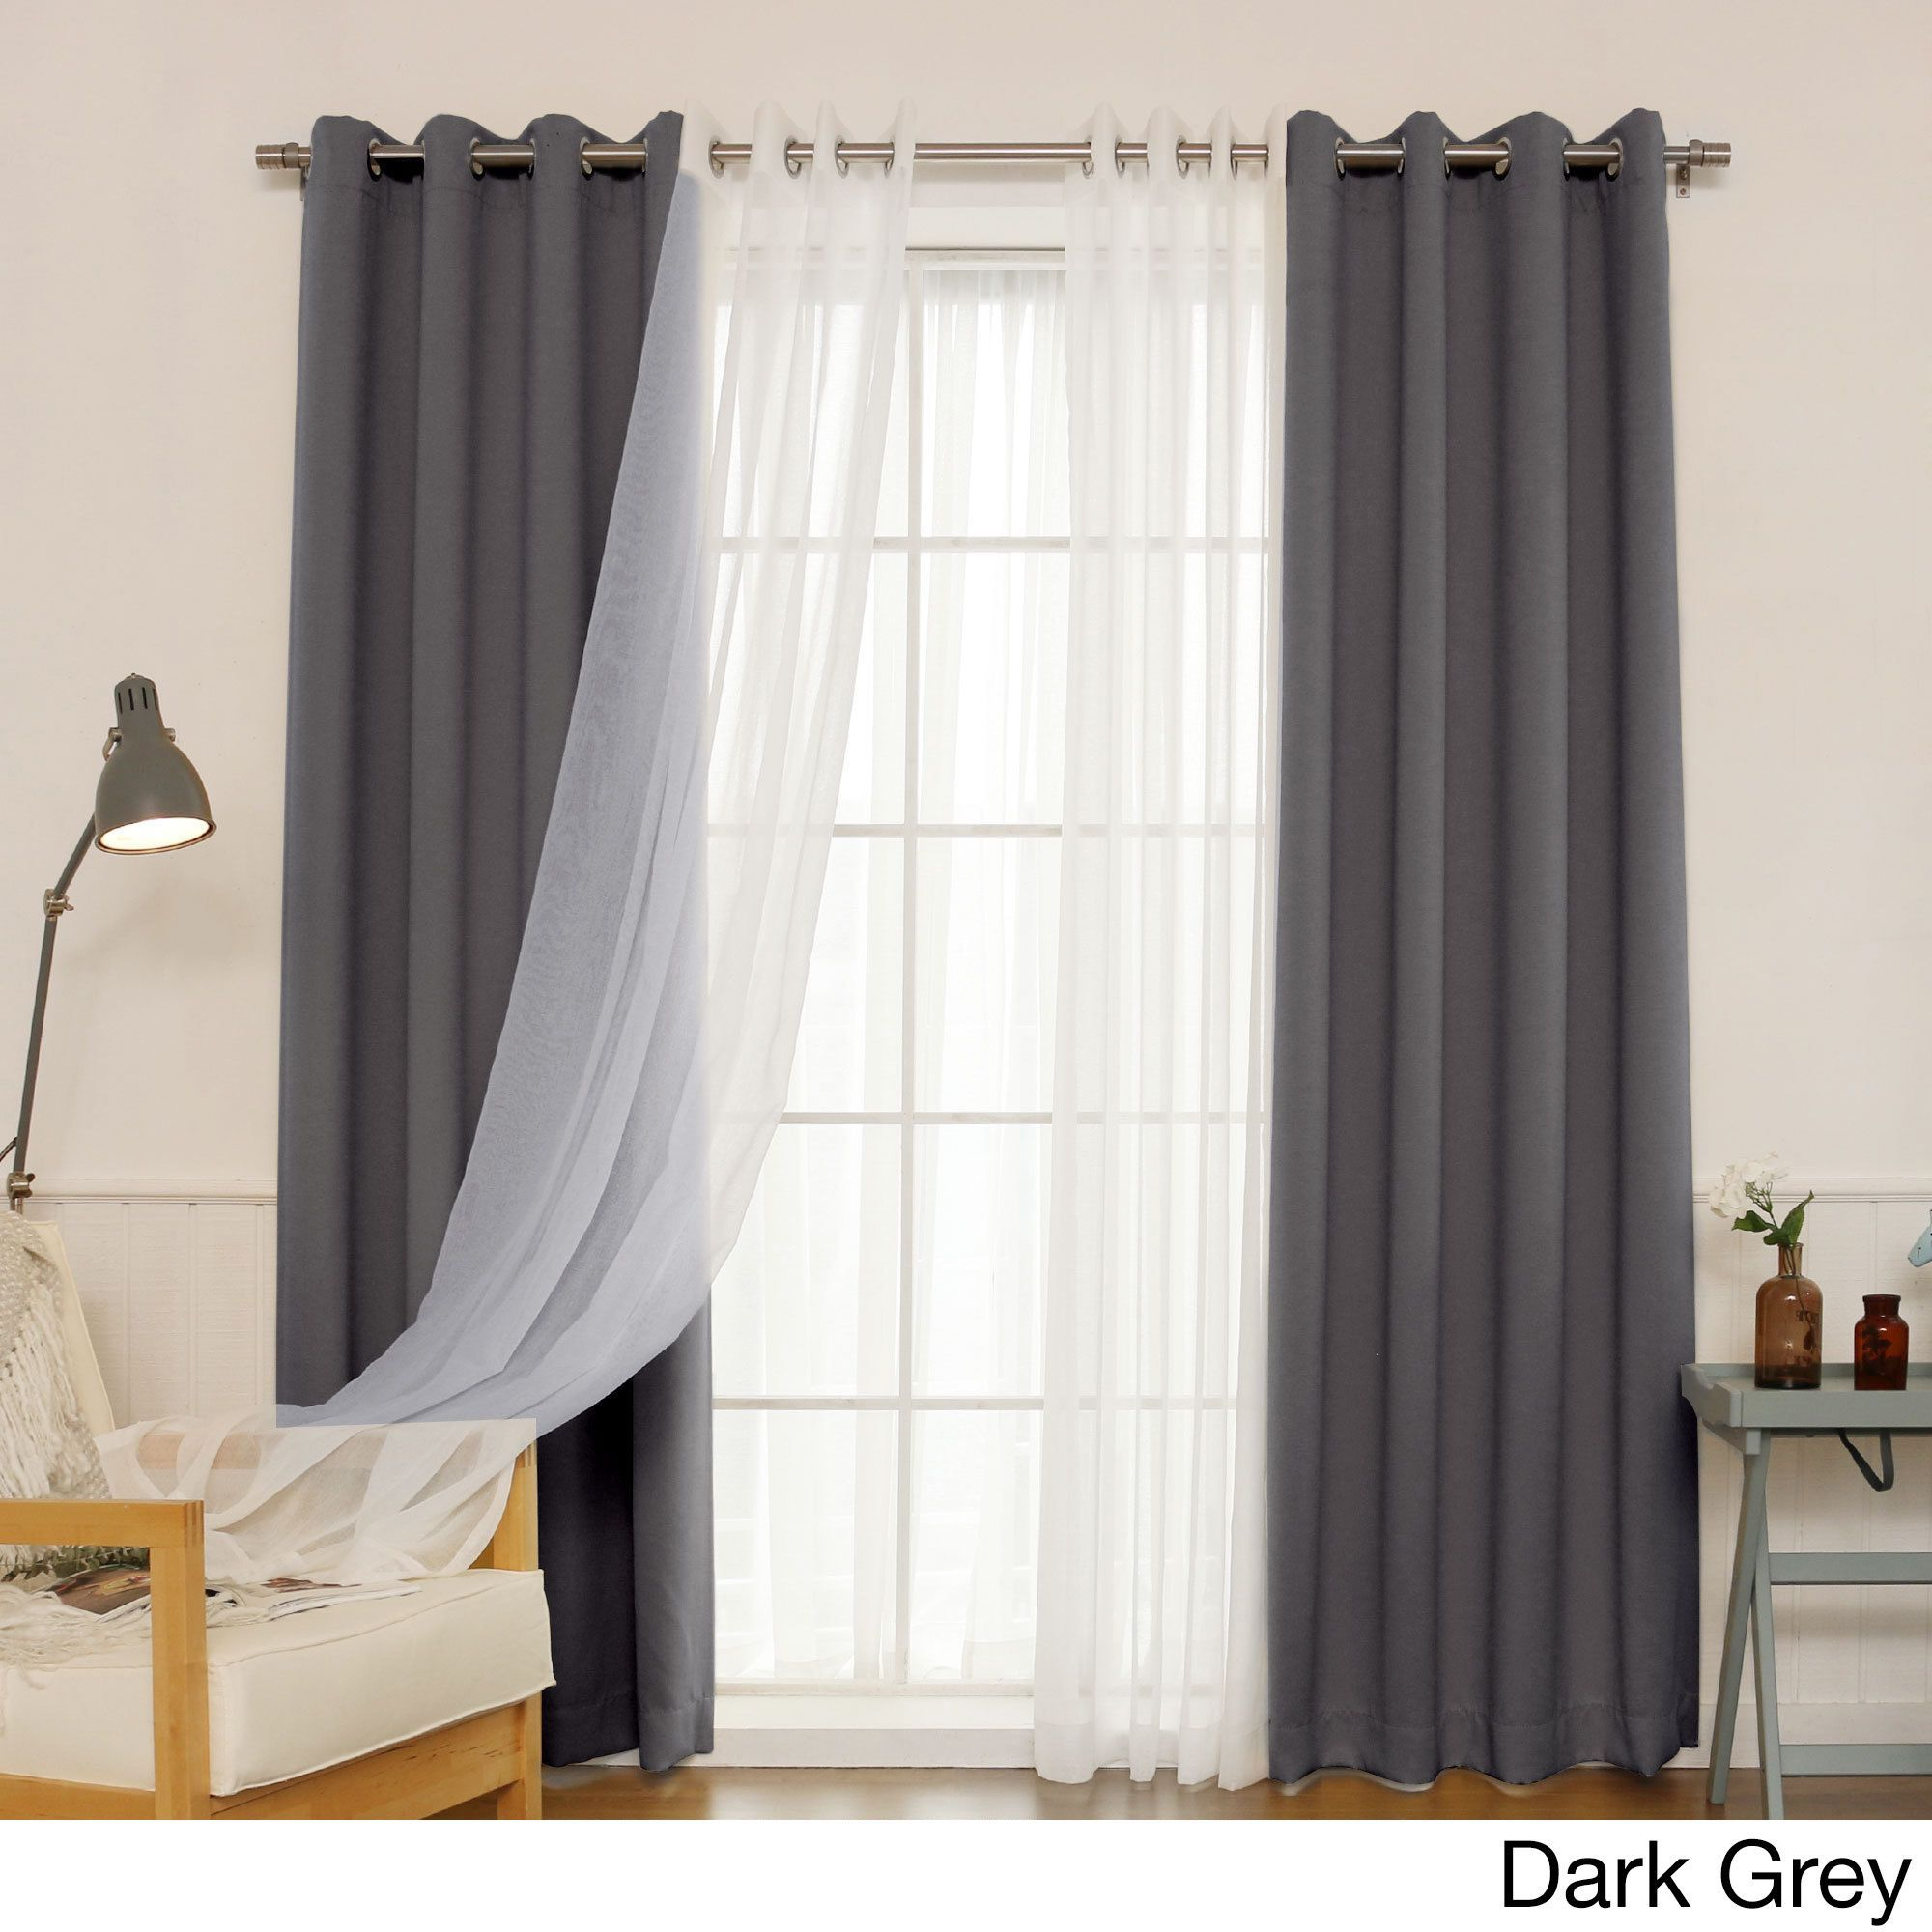 aurora bronze overstock inch free home muji darkening match piece room today garden and sheer curtain pair grommet moroccan curtains mix shipping panel product